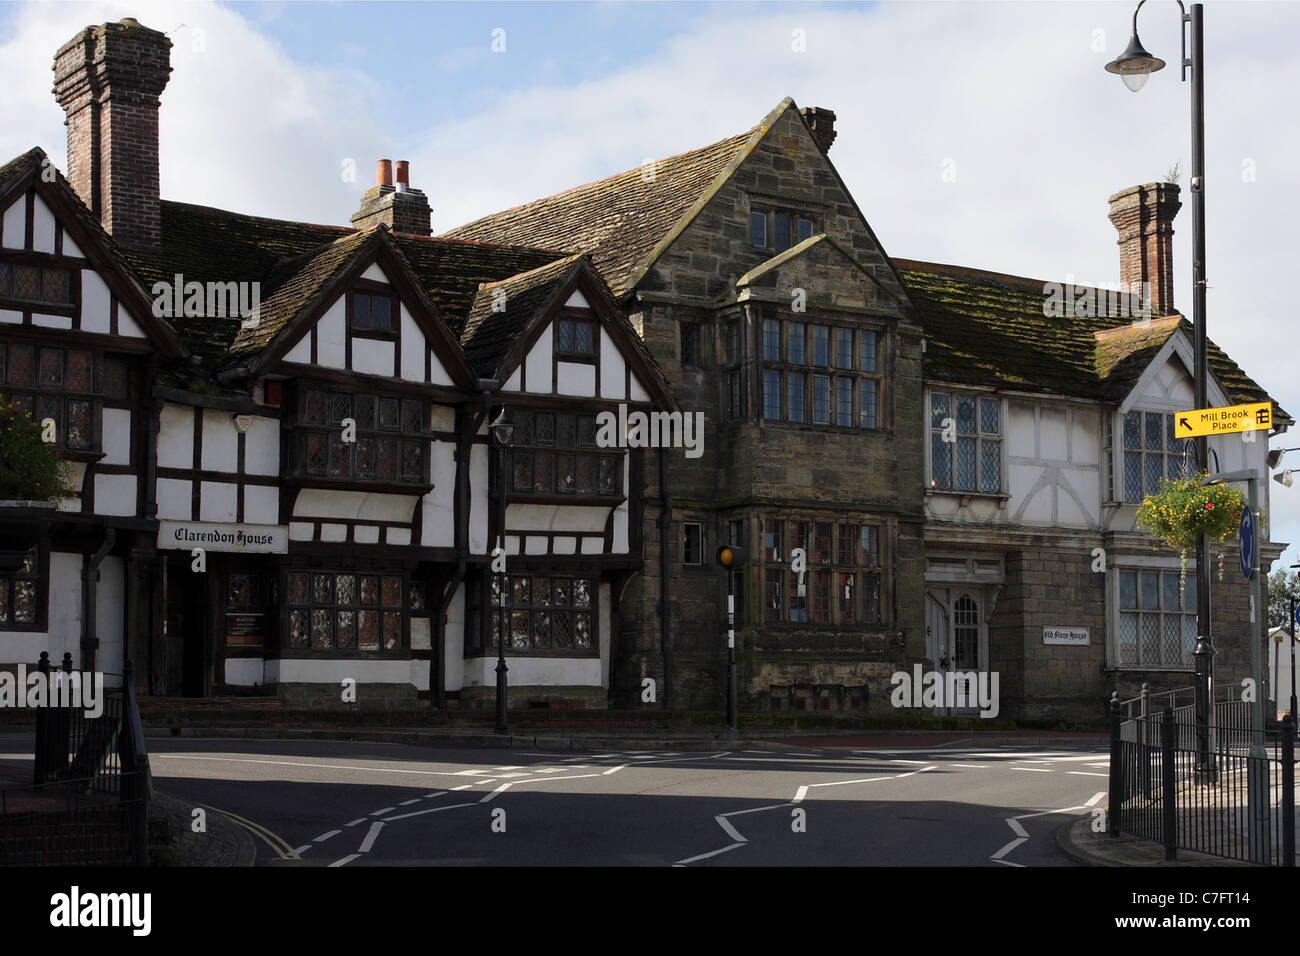 Tudor Architecture tudor architecture,situated in judges terrace are these examples